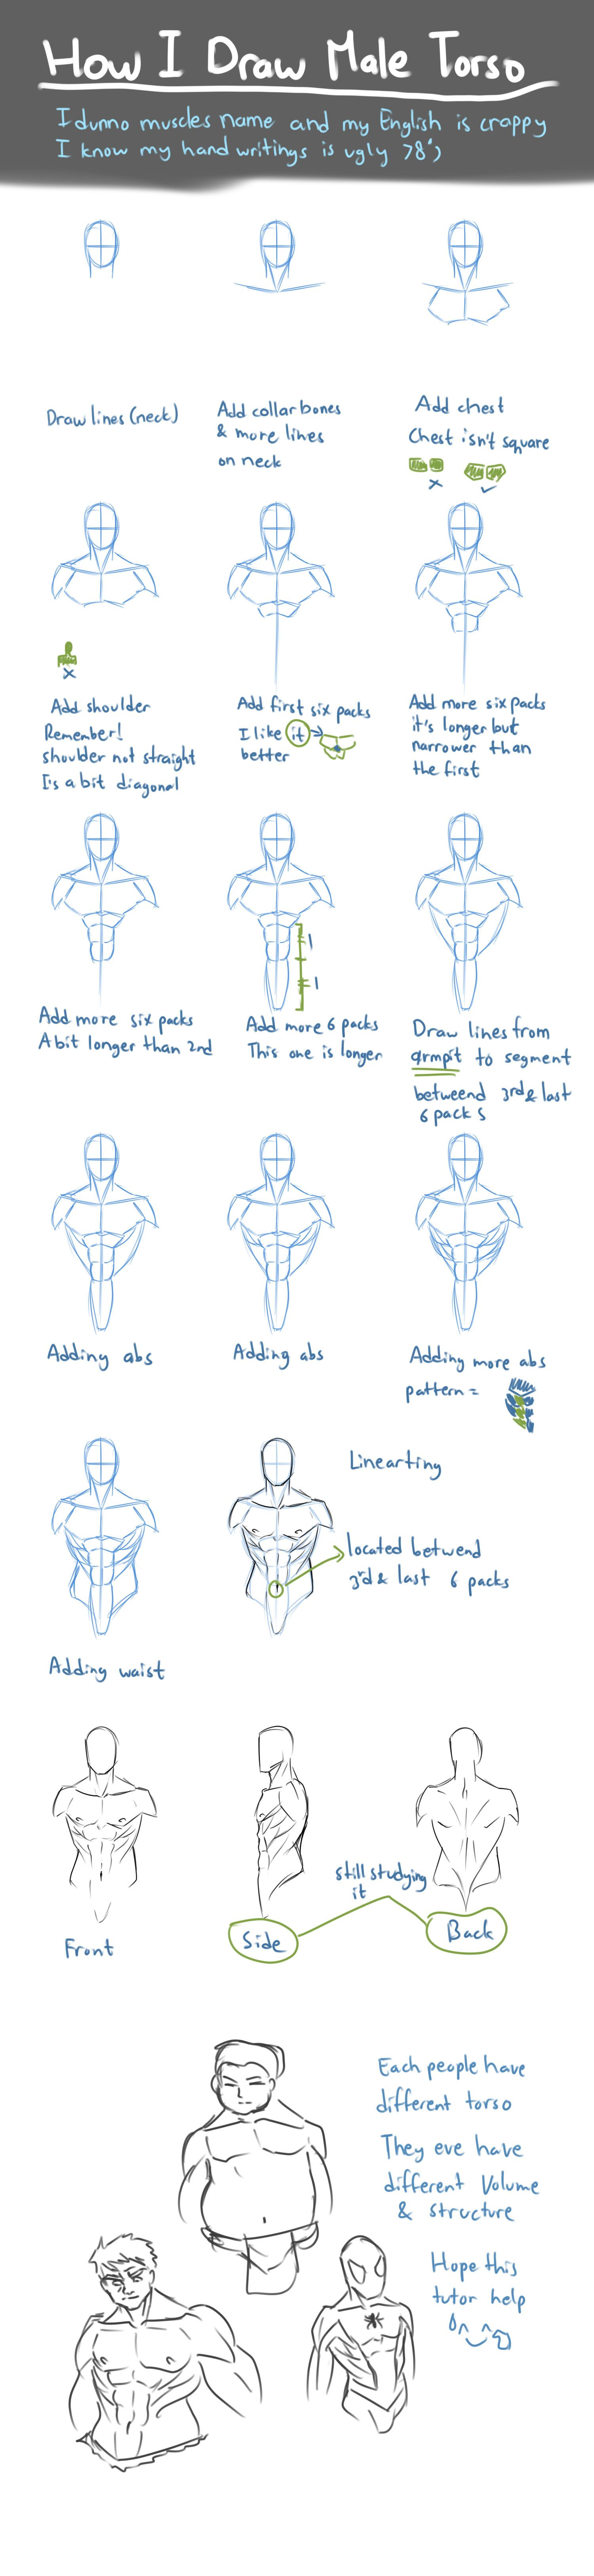 Pin by Zoey Lyn on Drawing Reference   Pinterest   Drawing reference ...